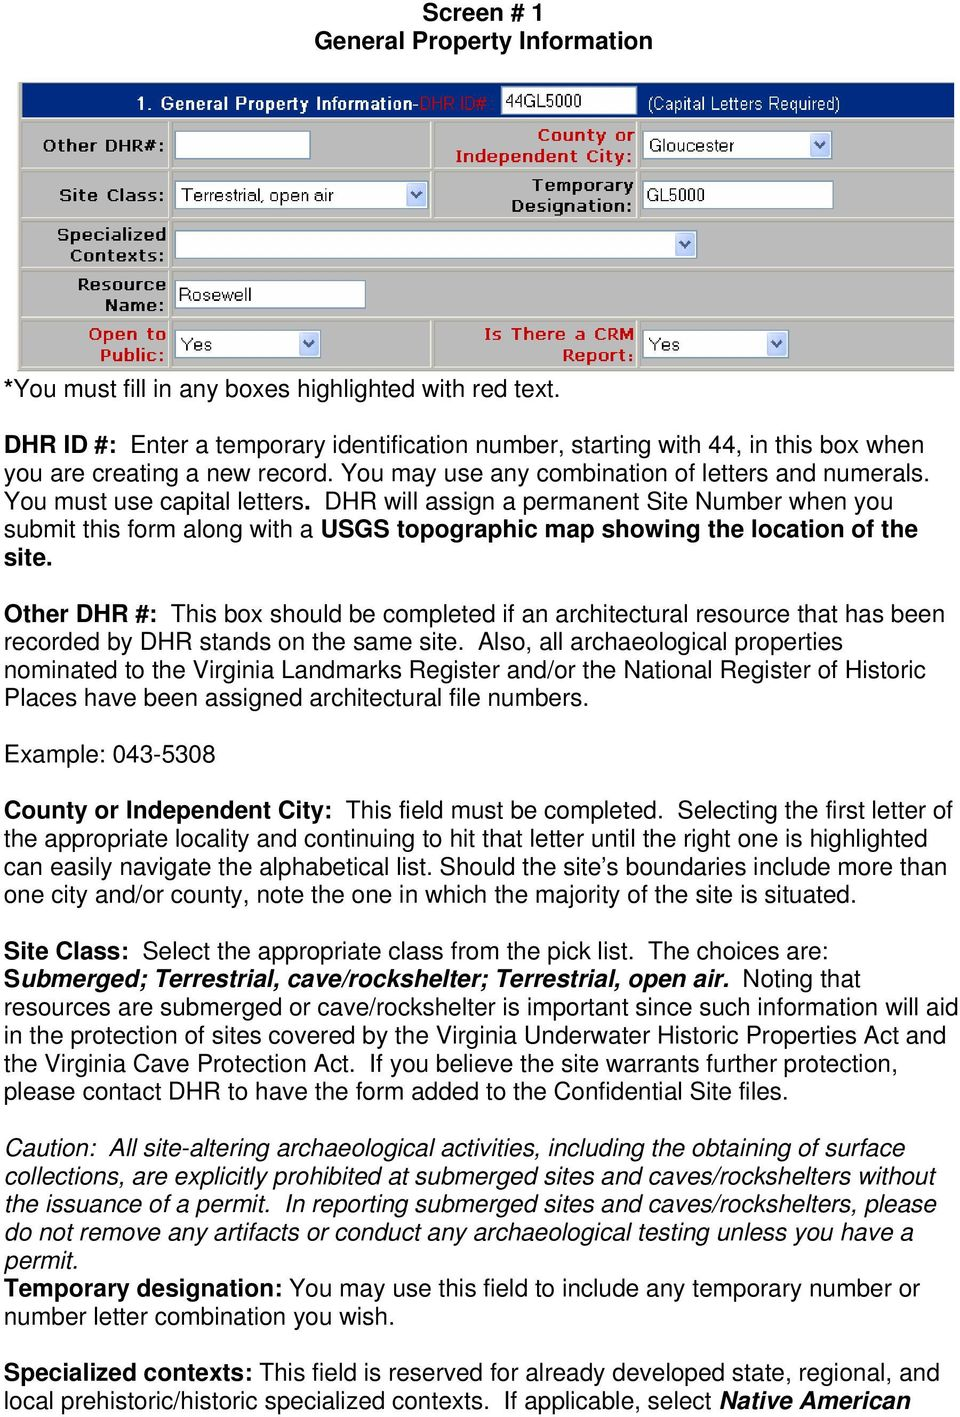 DHR will assign a permanent Site Number when you submit this form along with a USGS topographic map showing the location of the site.